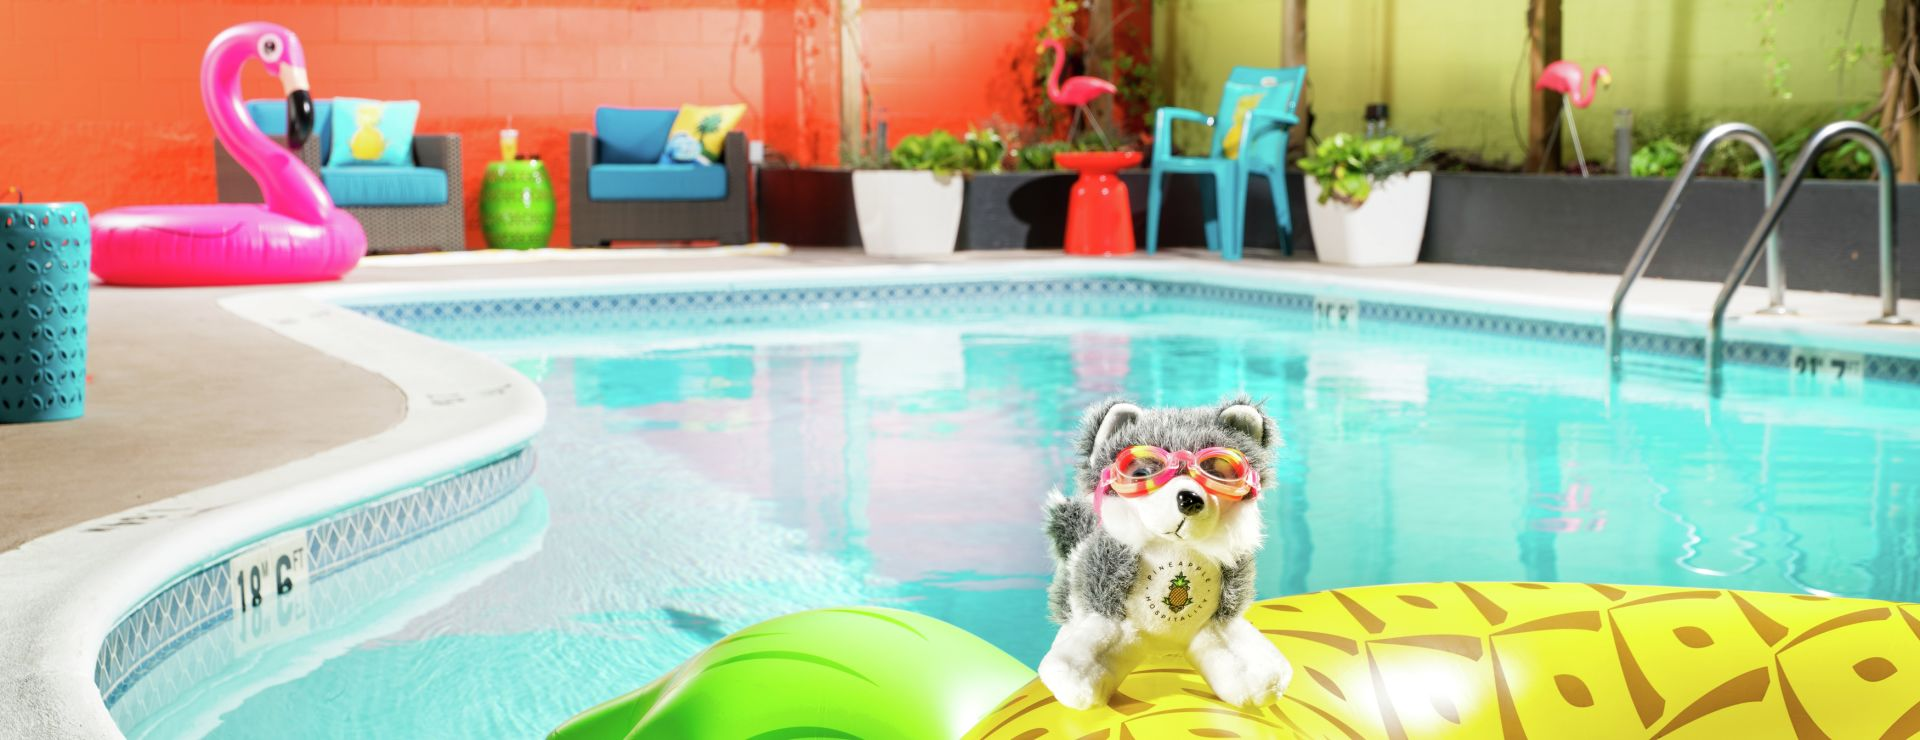 Dash doll with swimming goggles on pineapple pool floaty in pool